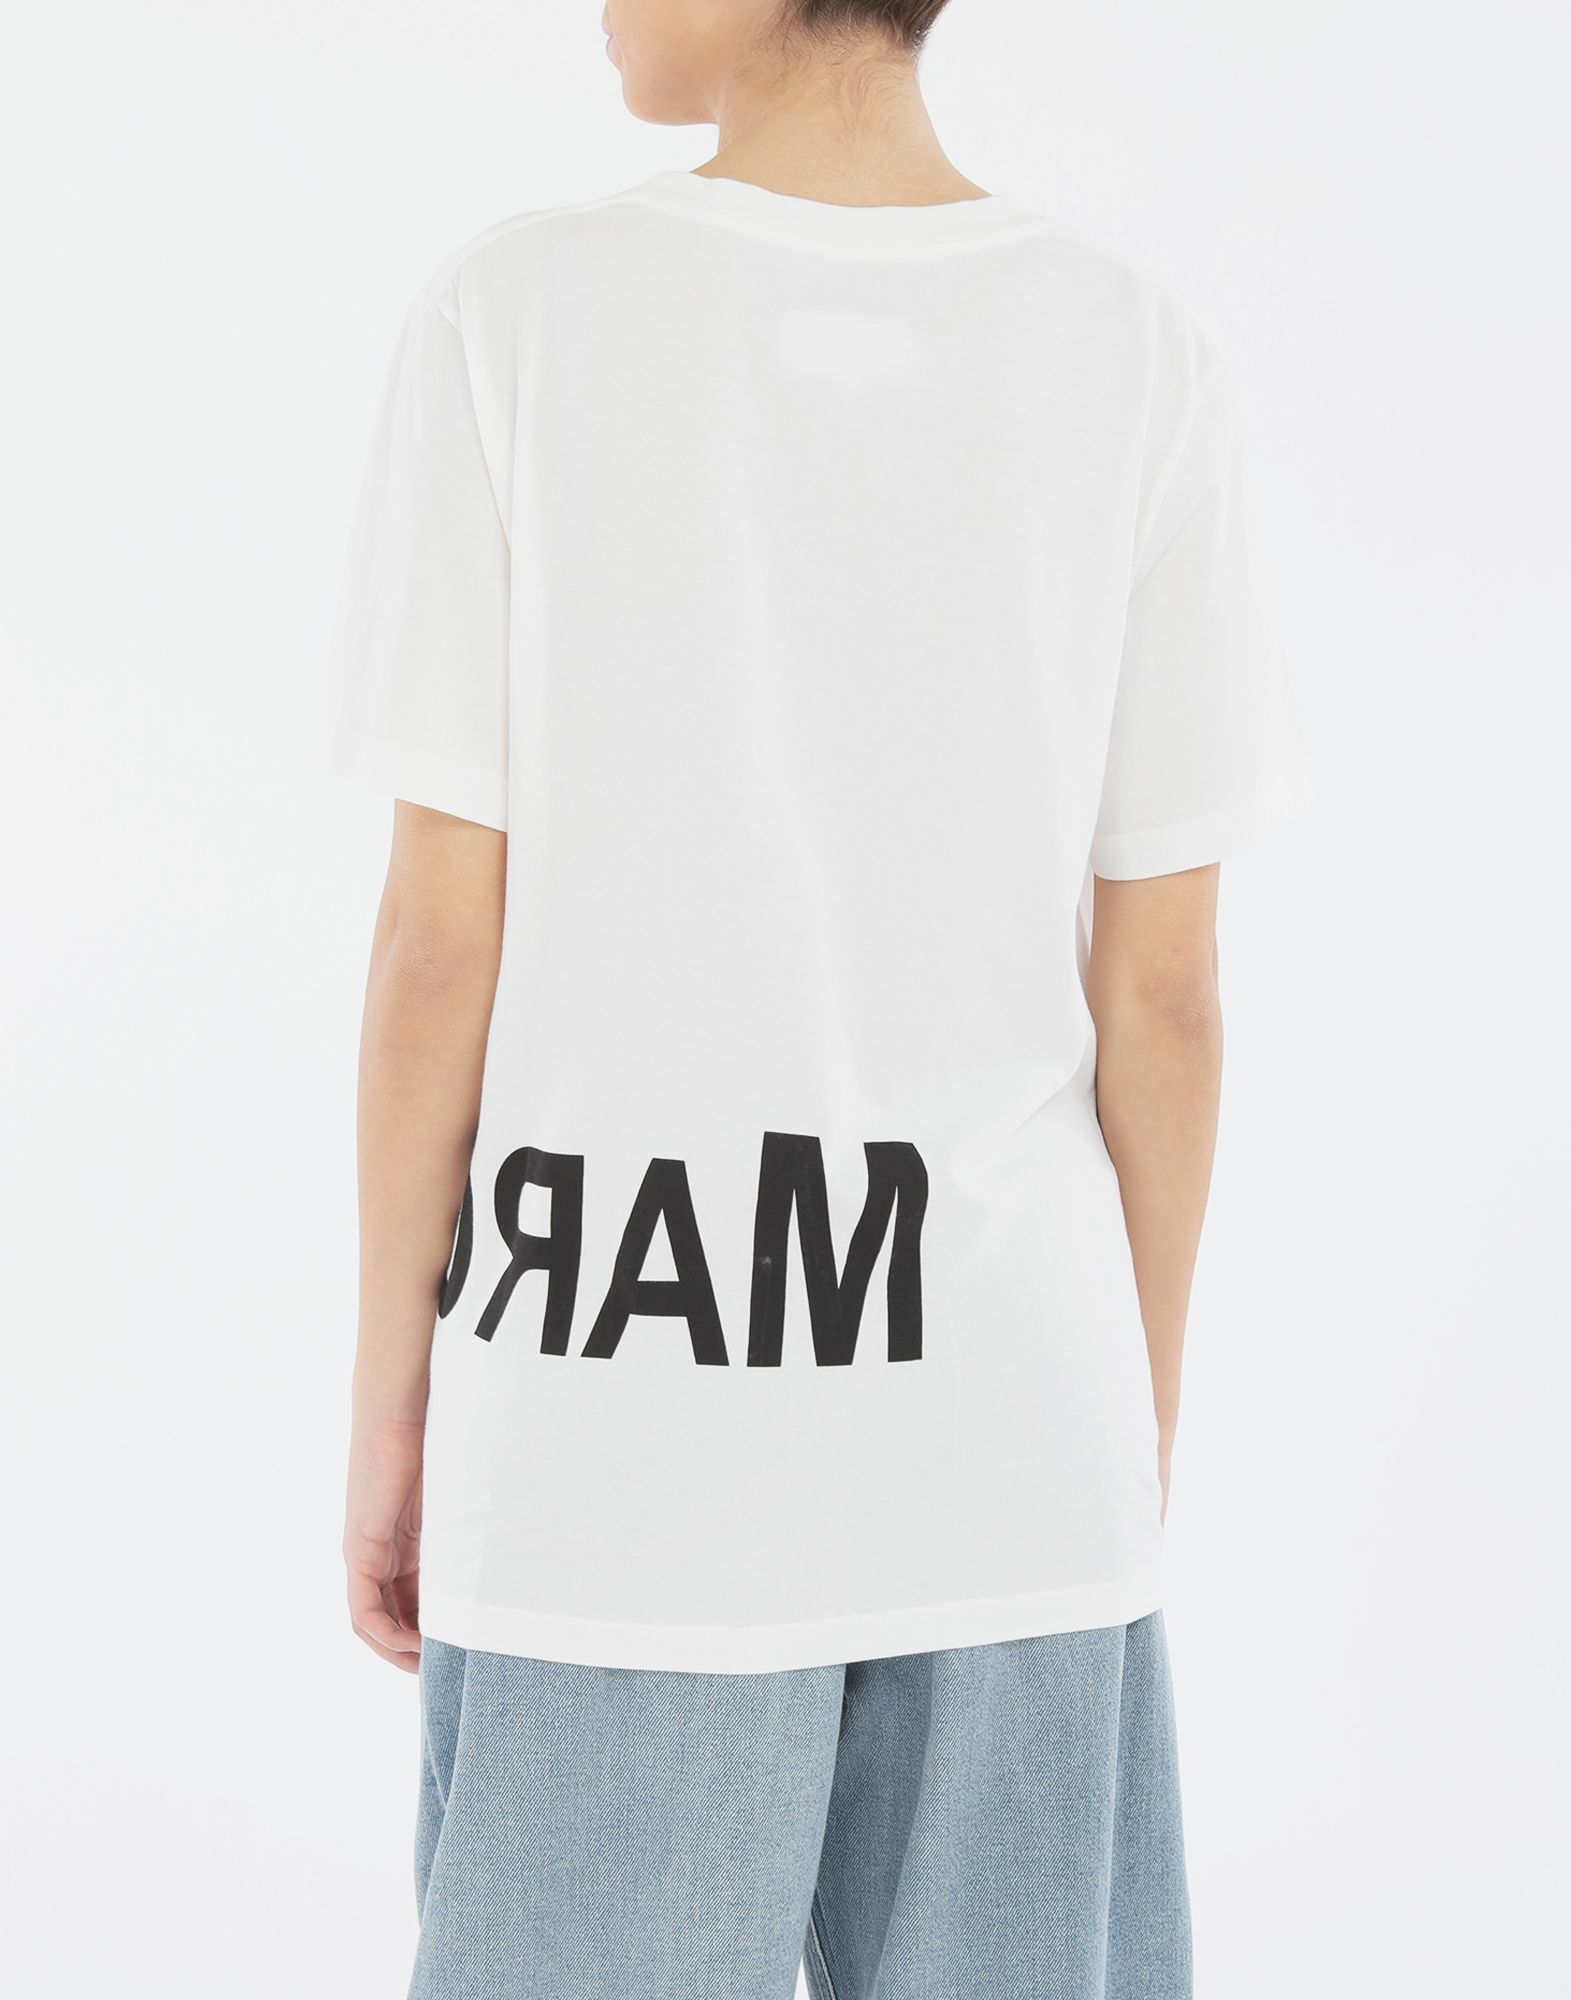 MM6 MAISON MARGIELA Reversed logo T-shirt Short sleeve t-shirt Woman e